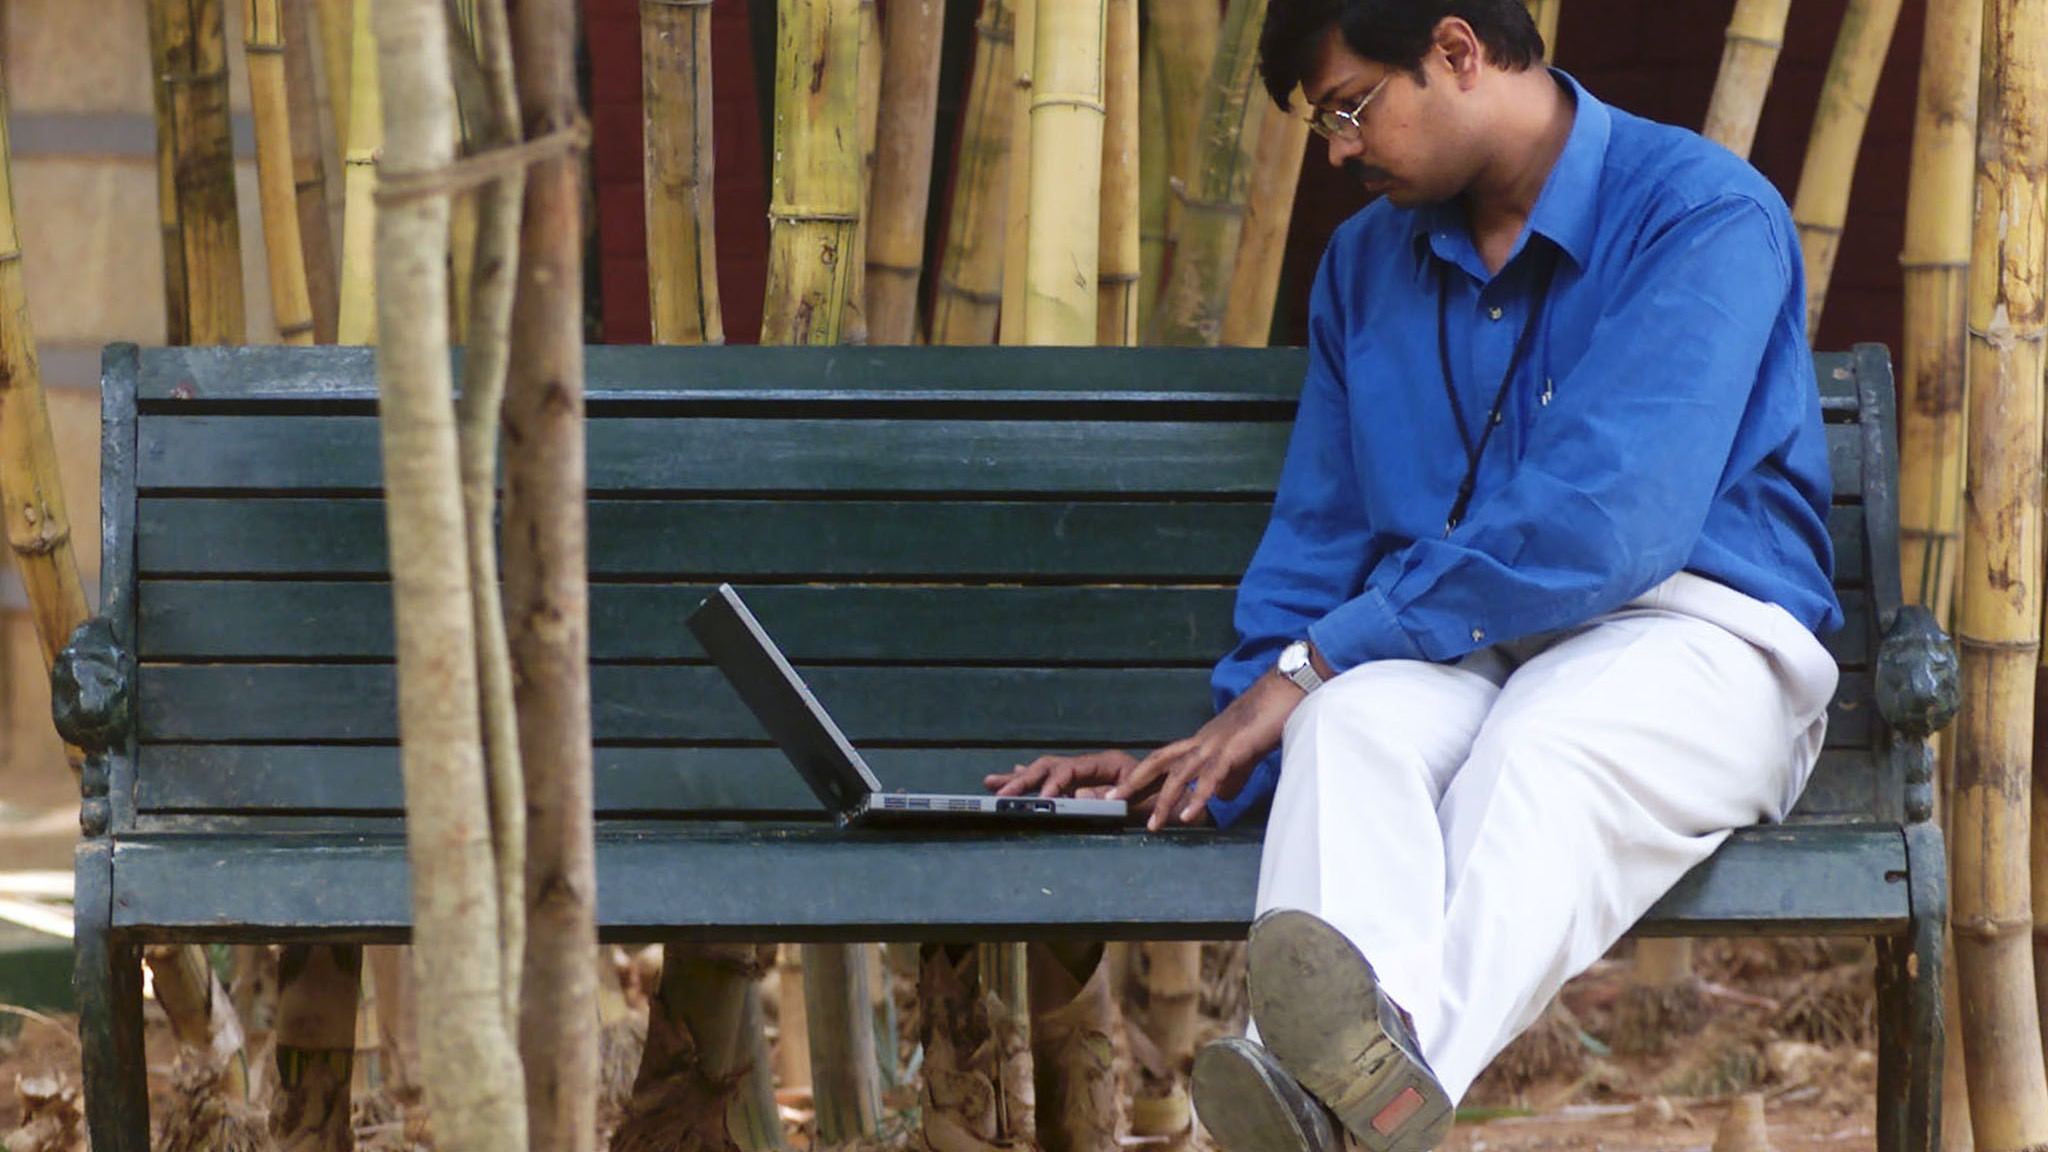 An employee of Infosys Technologies Ltd works on a laptop during his lunch break in Bangalore April 6. Infosys Technologies Ltd is the first Indian software company to be listed on a United States stock exchange. Bangalore today is home to dozens of global and domestic technology companies employing an estimated 75,000 software professionals and is popularly referred to as Asia's 'Silicon Valley'.